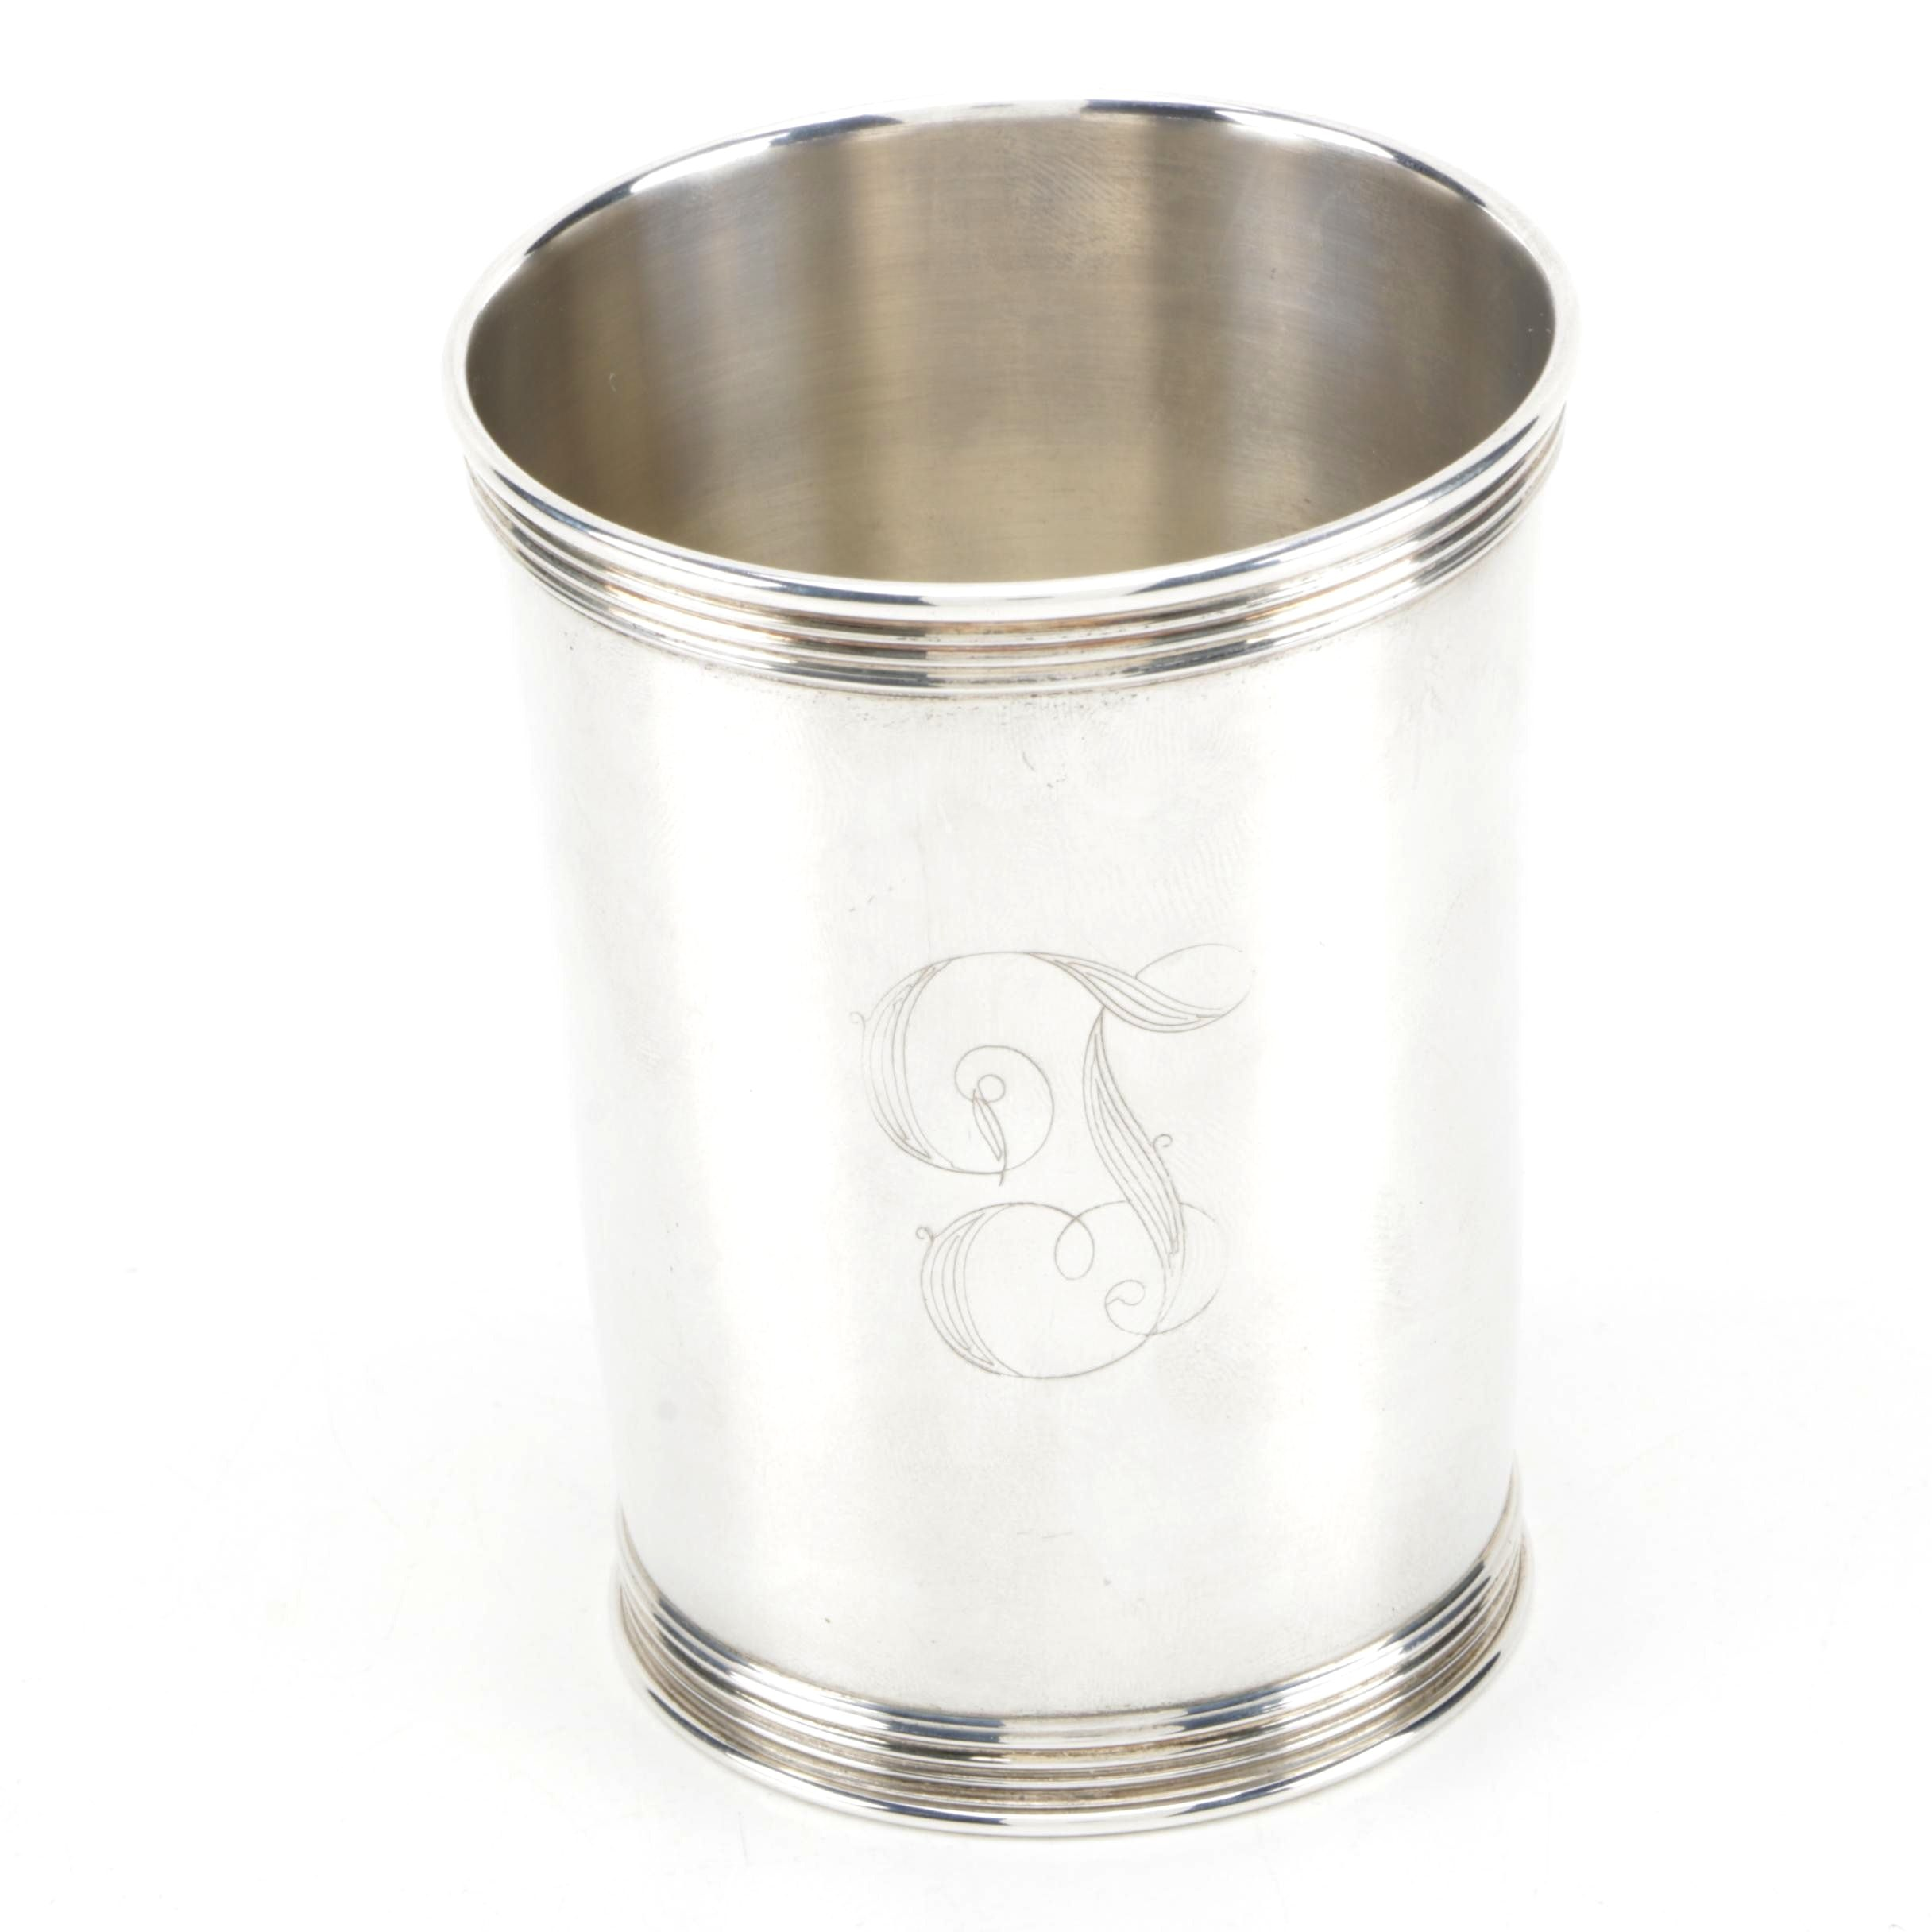 Manchester Silver Co. Sterling Silver Julep Cup